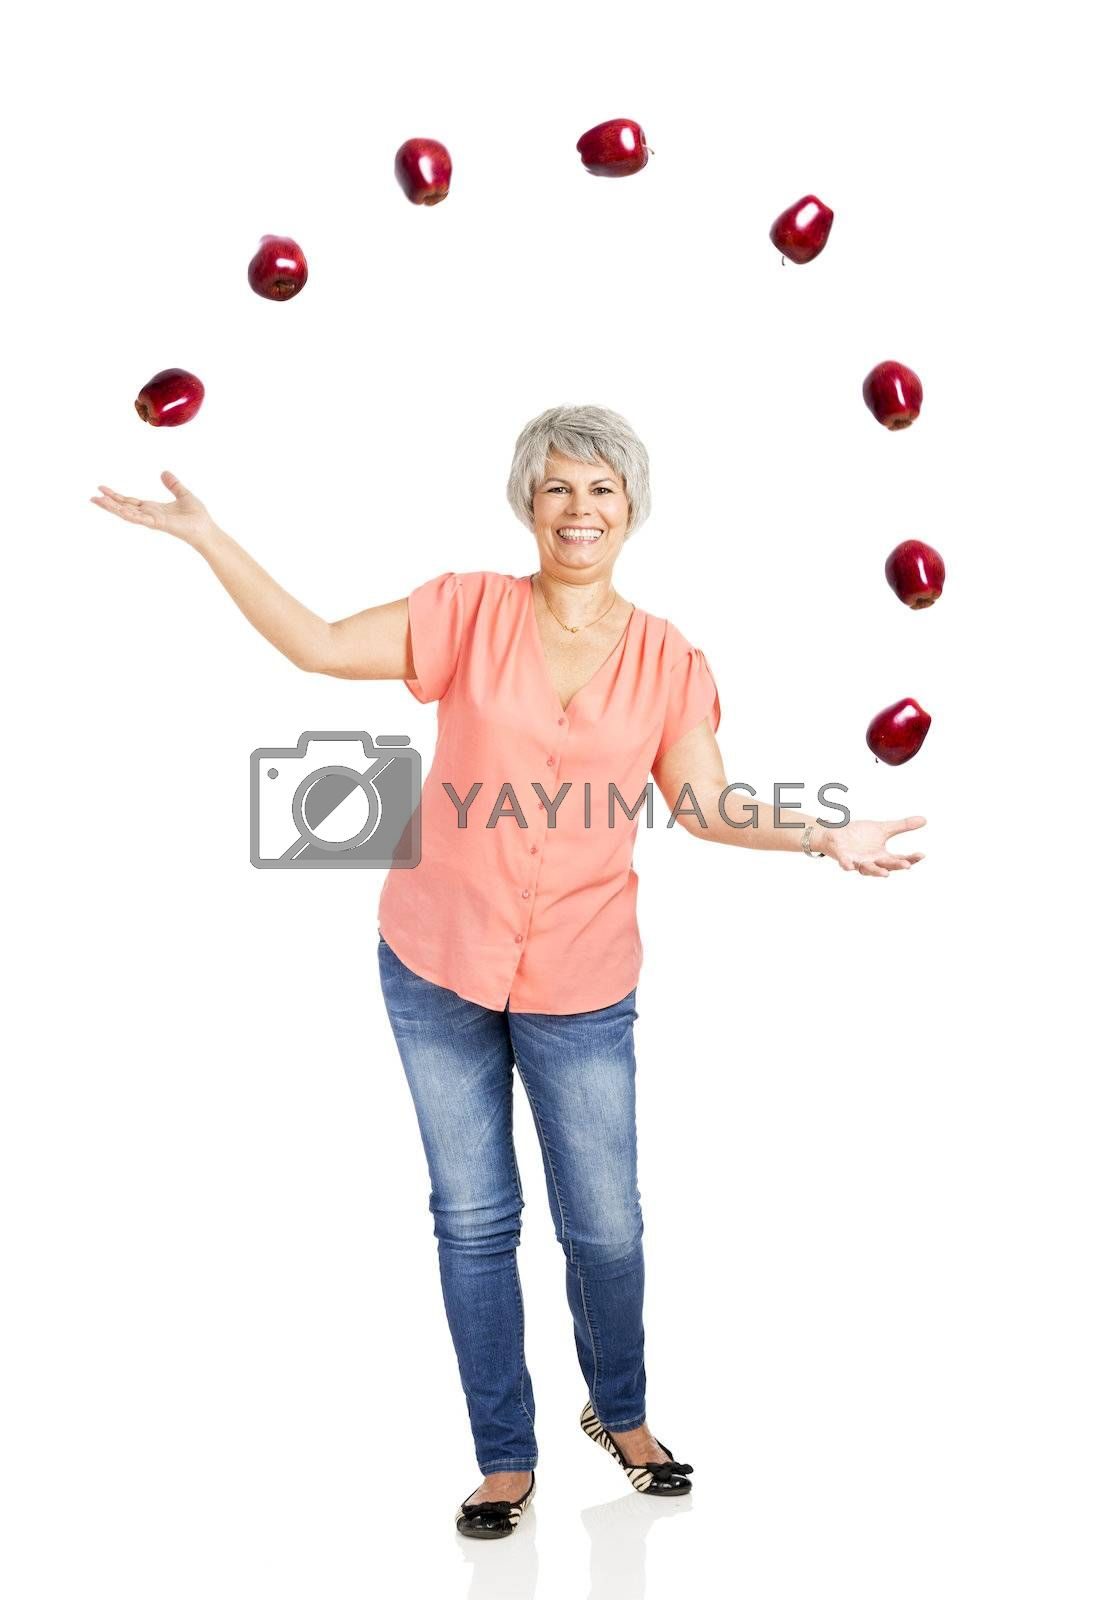 Royalty free image of Old woman throwing apples by Iko